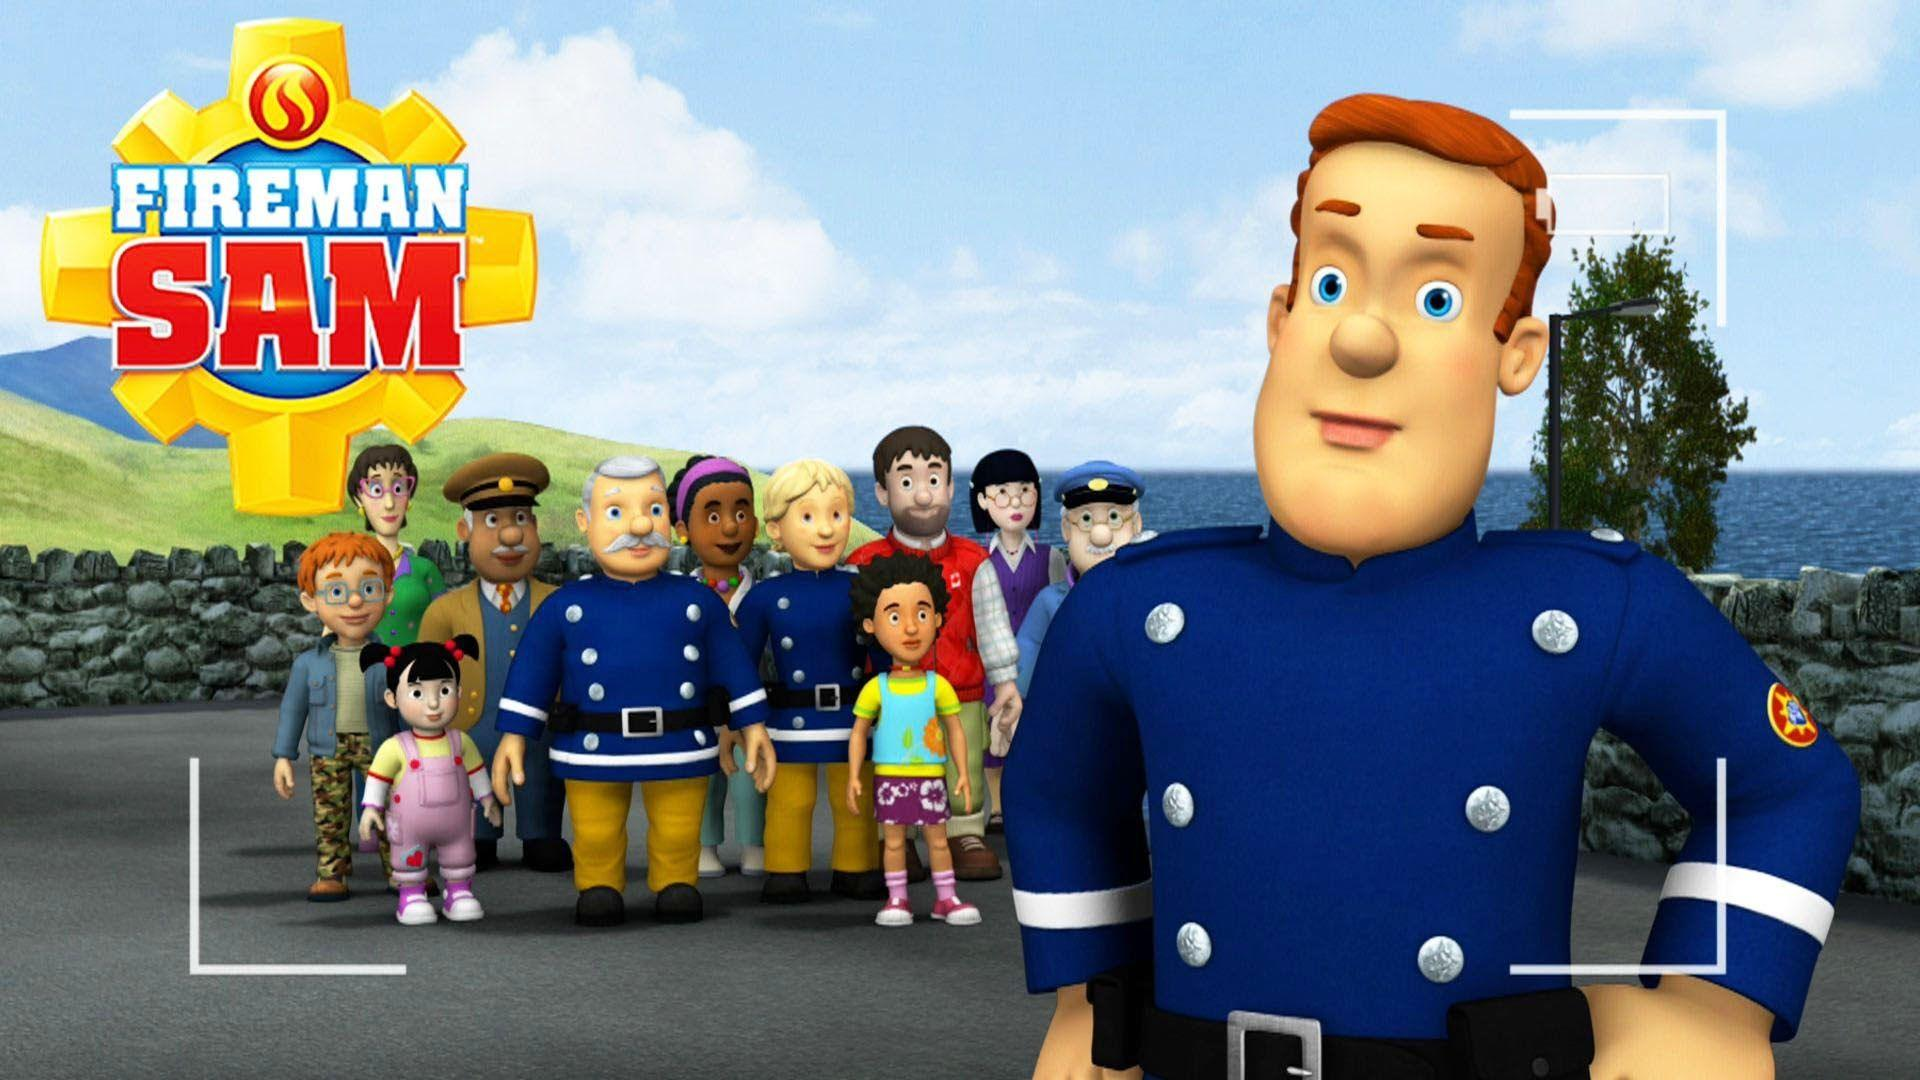 Fireman Sam US Official: A Song About Fire Safety   YouTube